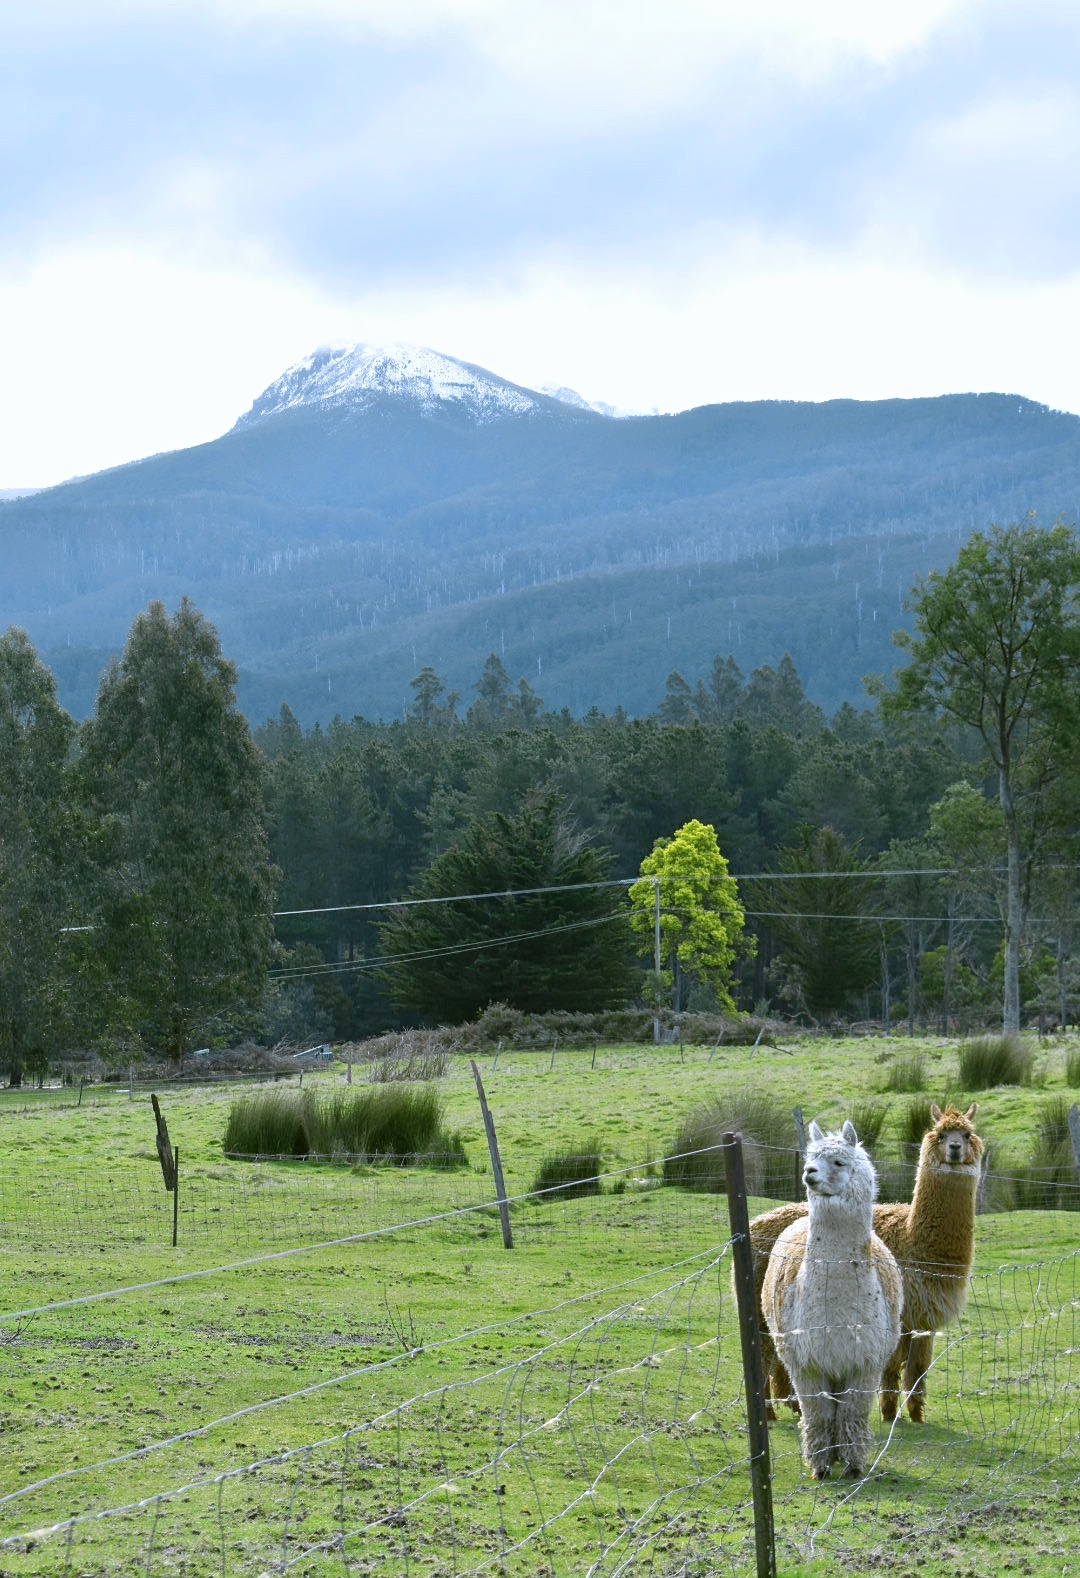 Alpacas & Snow Covered Mountains